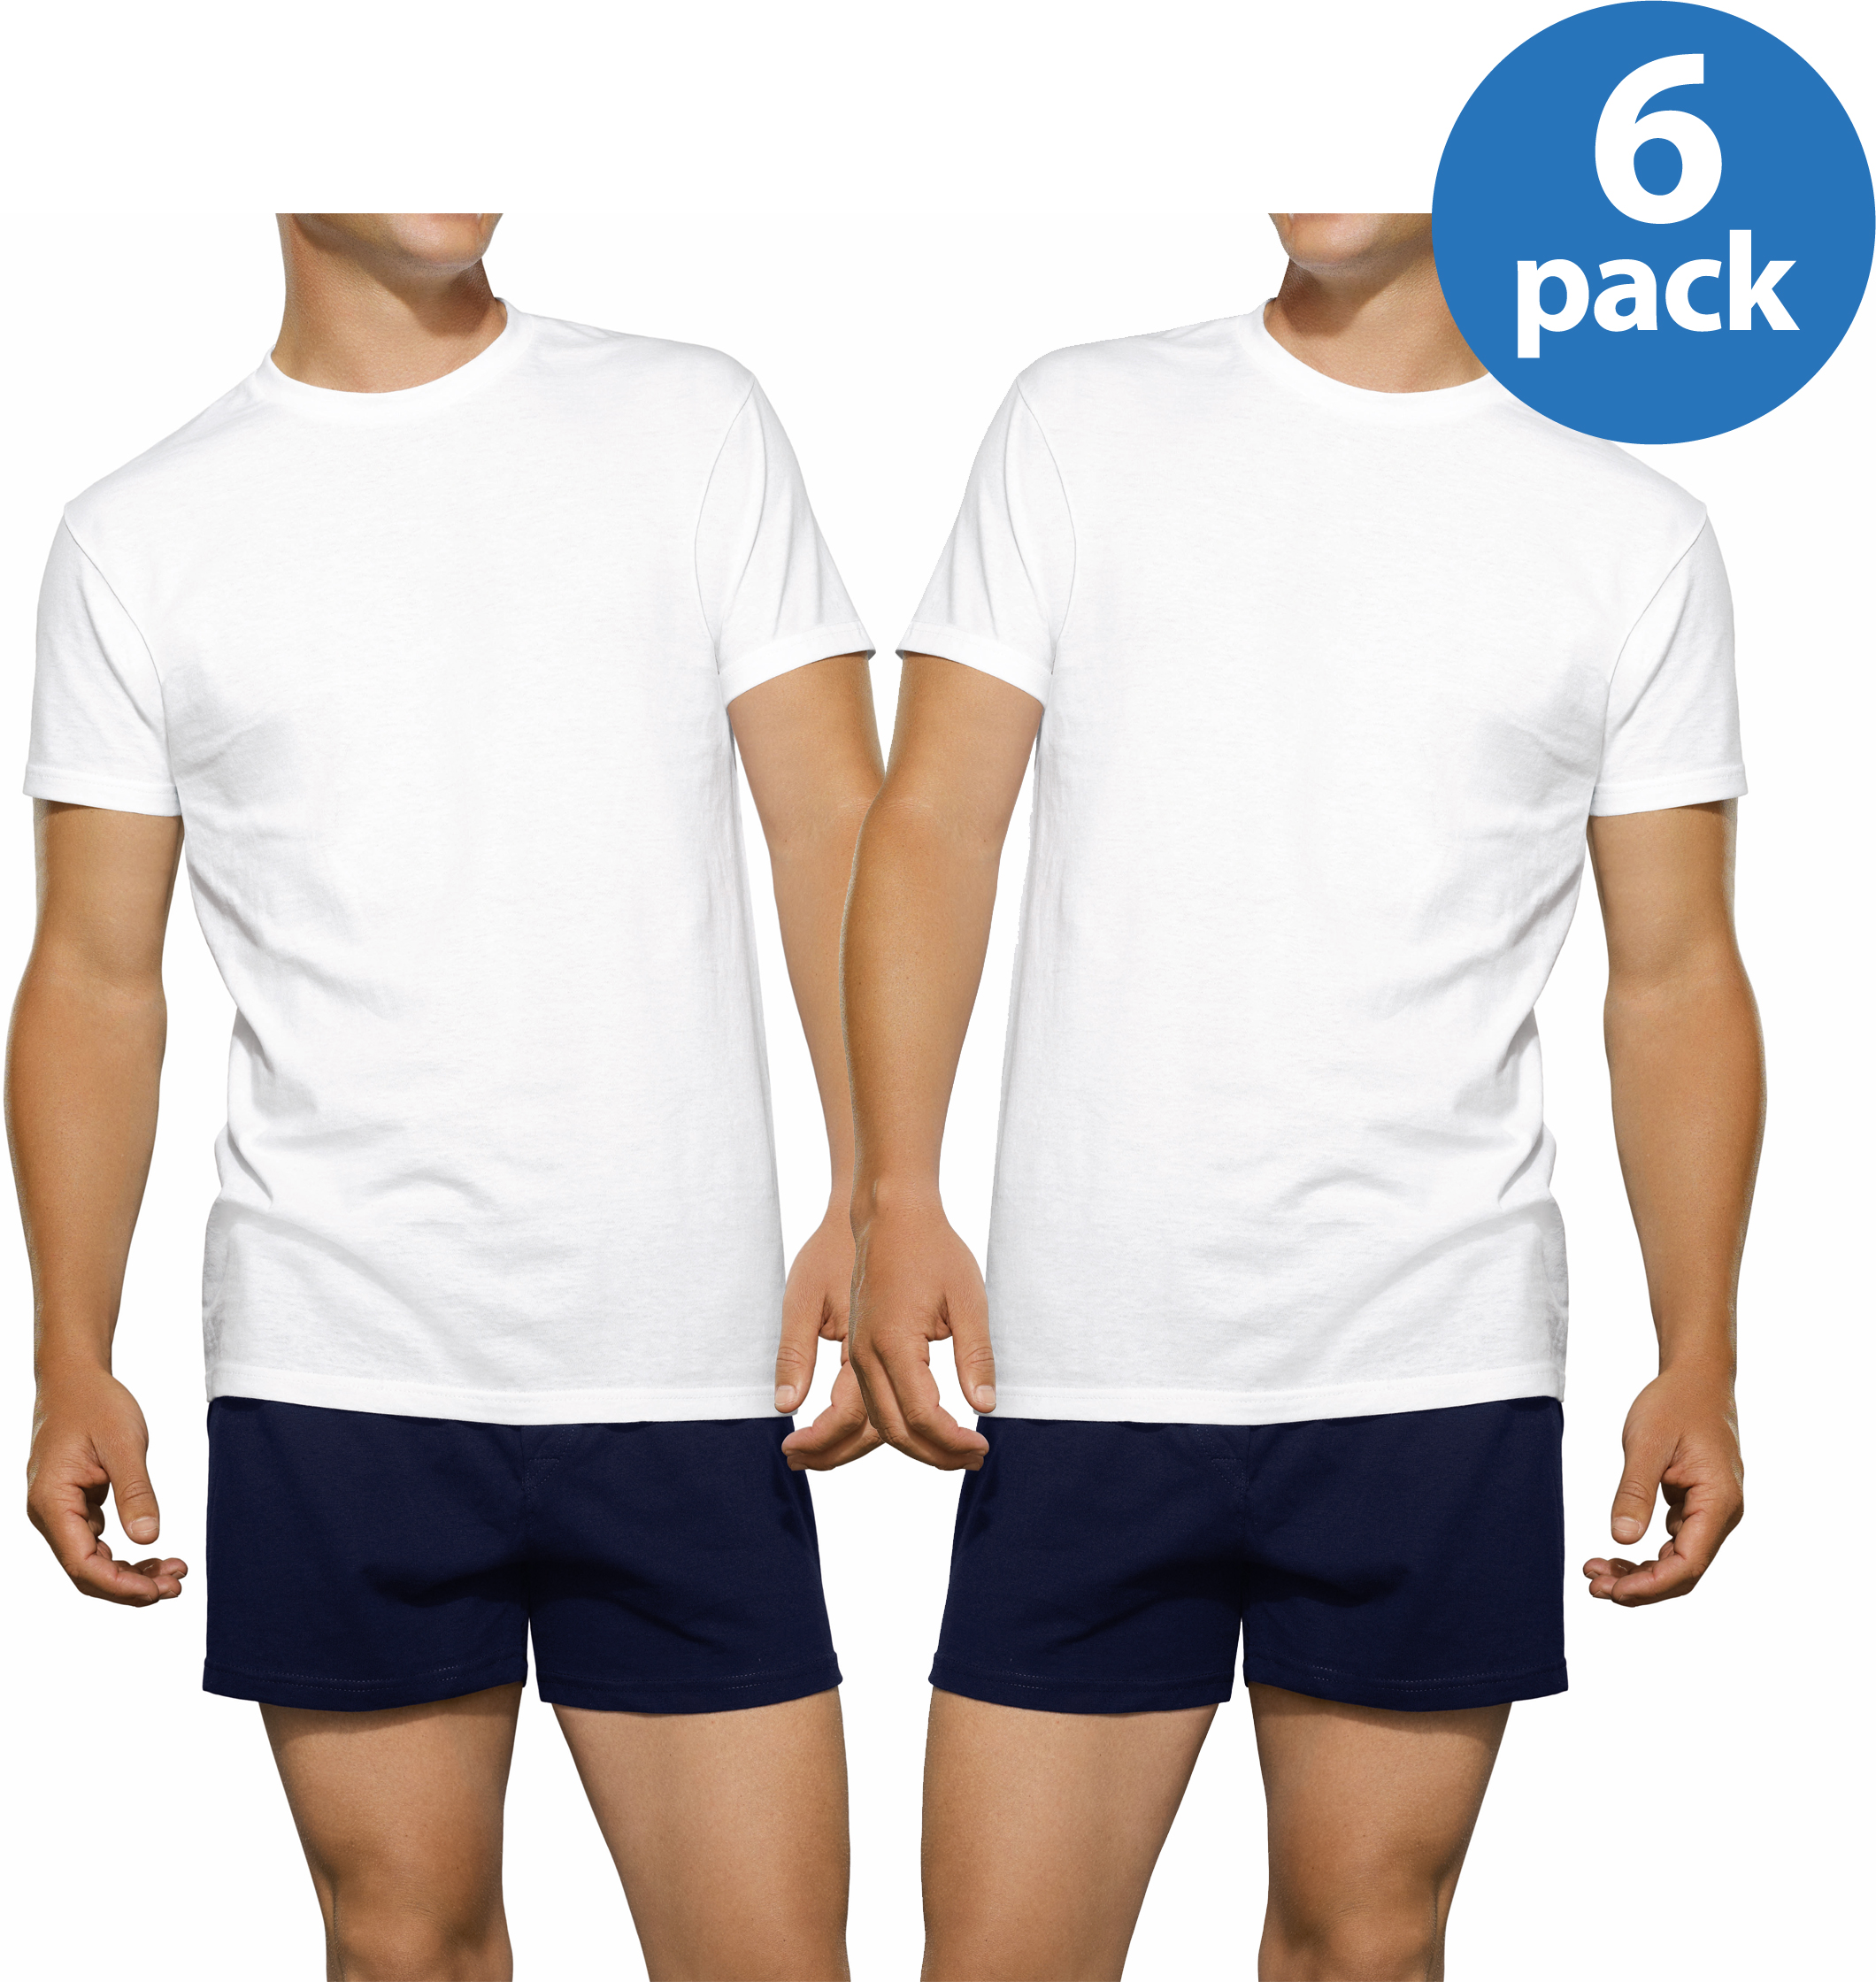 Fruit of the Loom Men's White Crew Undershirts, 6 Pack Value Bundle